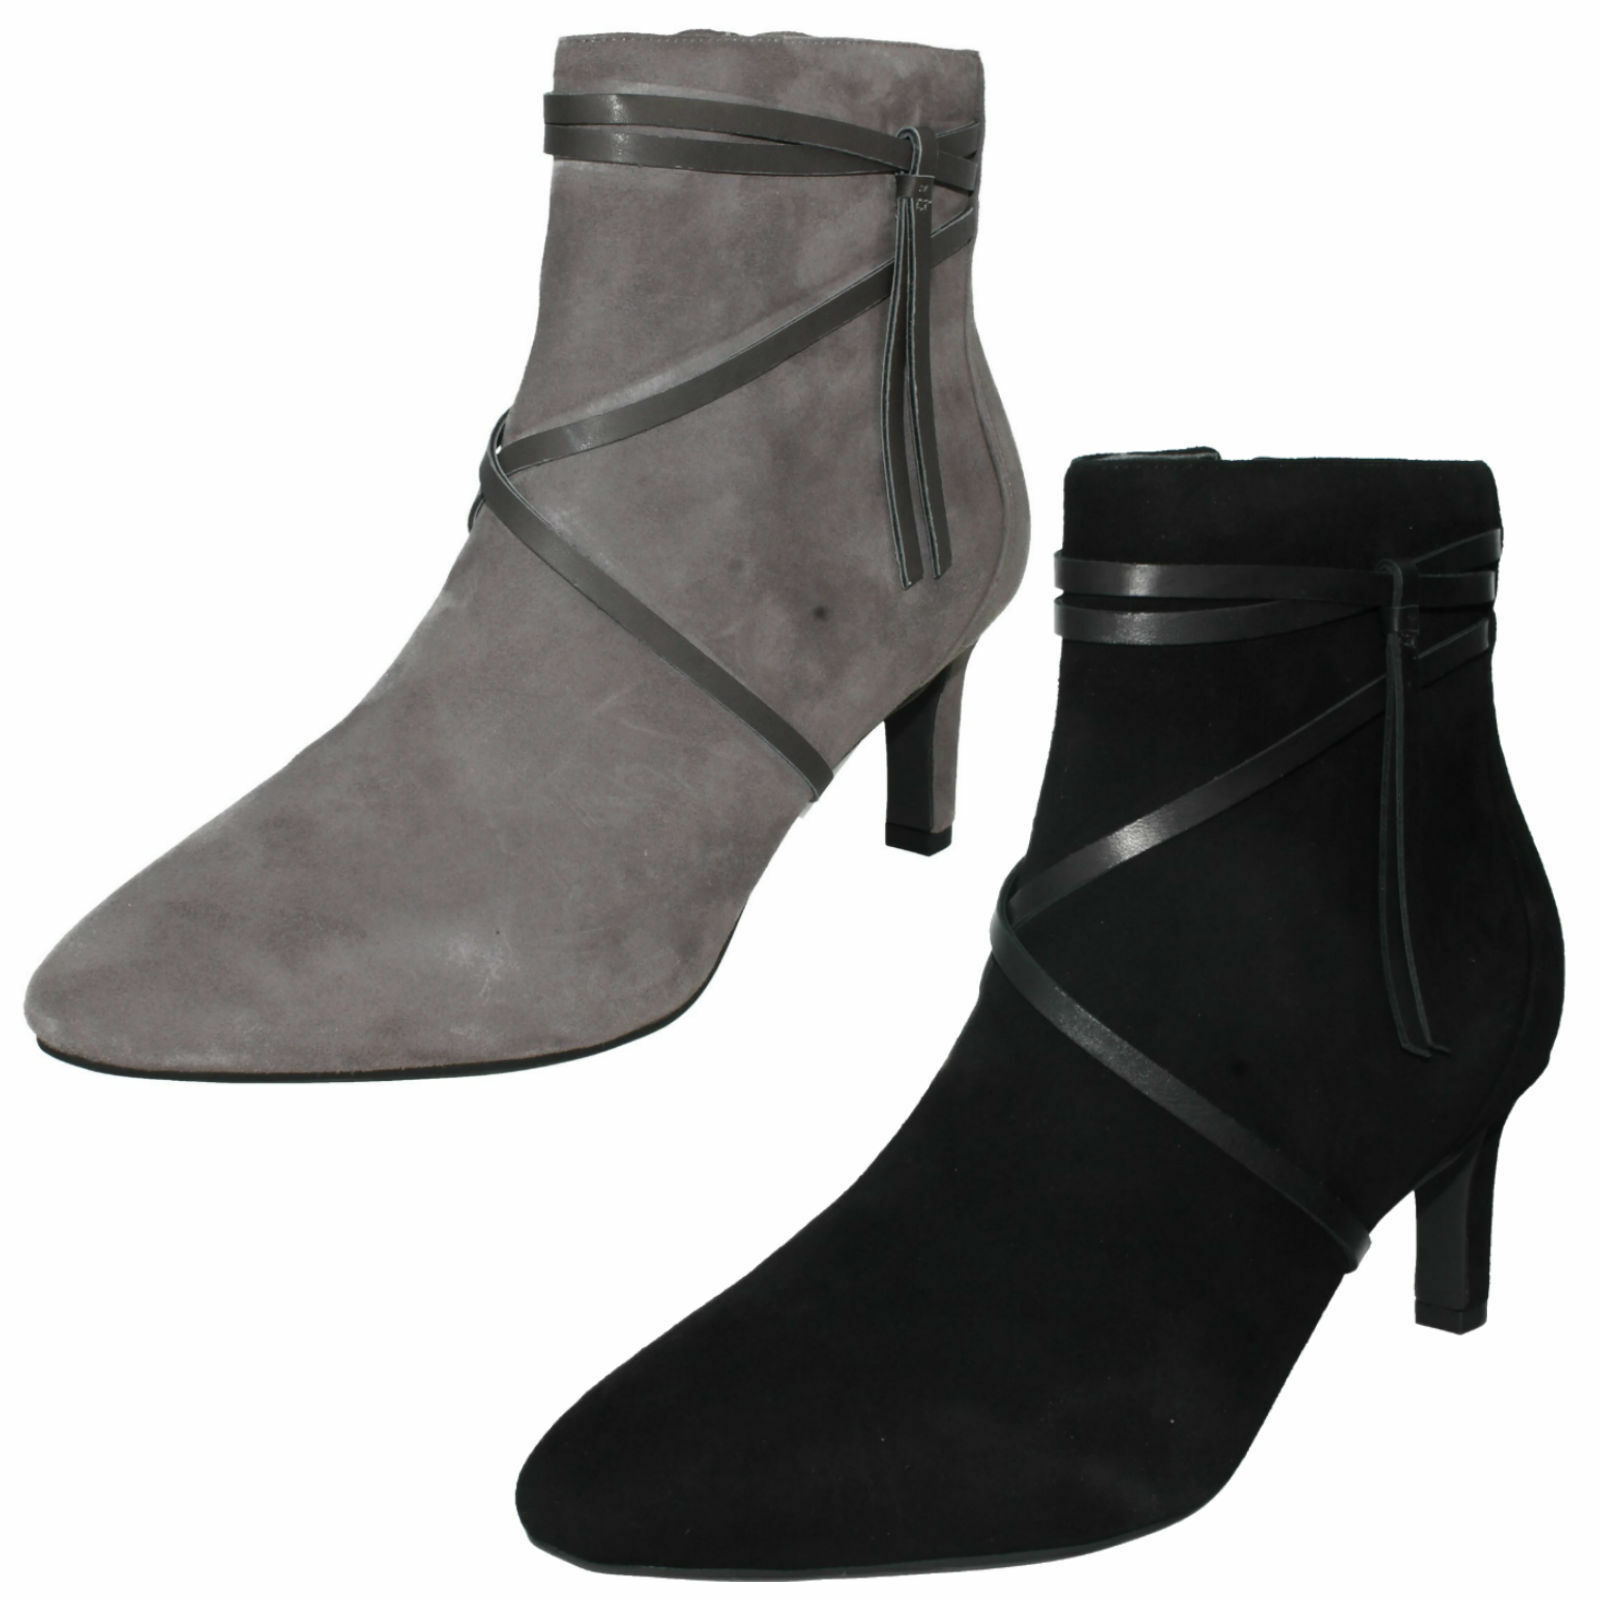 Lady Clarks Calla Aster Suede  Leather Smart Mid Heel Ankle Boo D Fitting  shopping online e negozio di moda